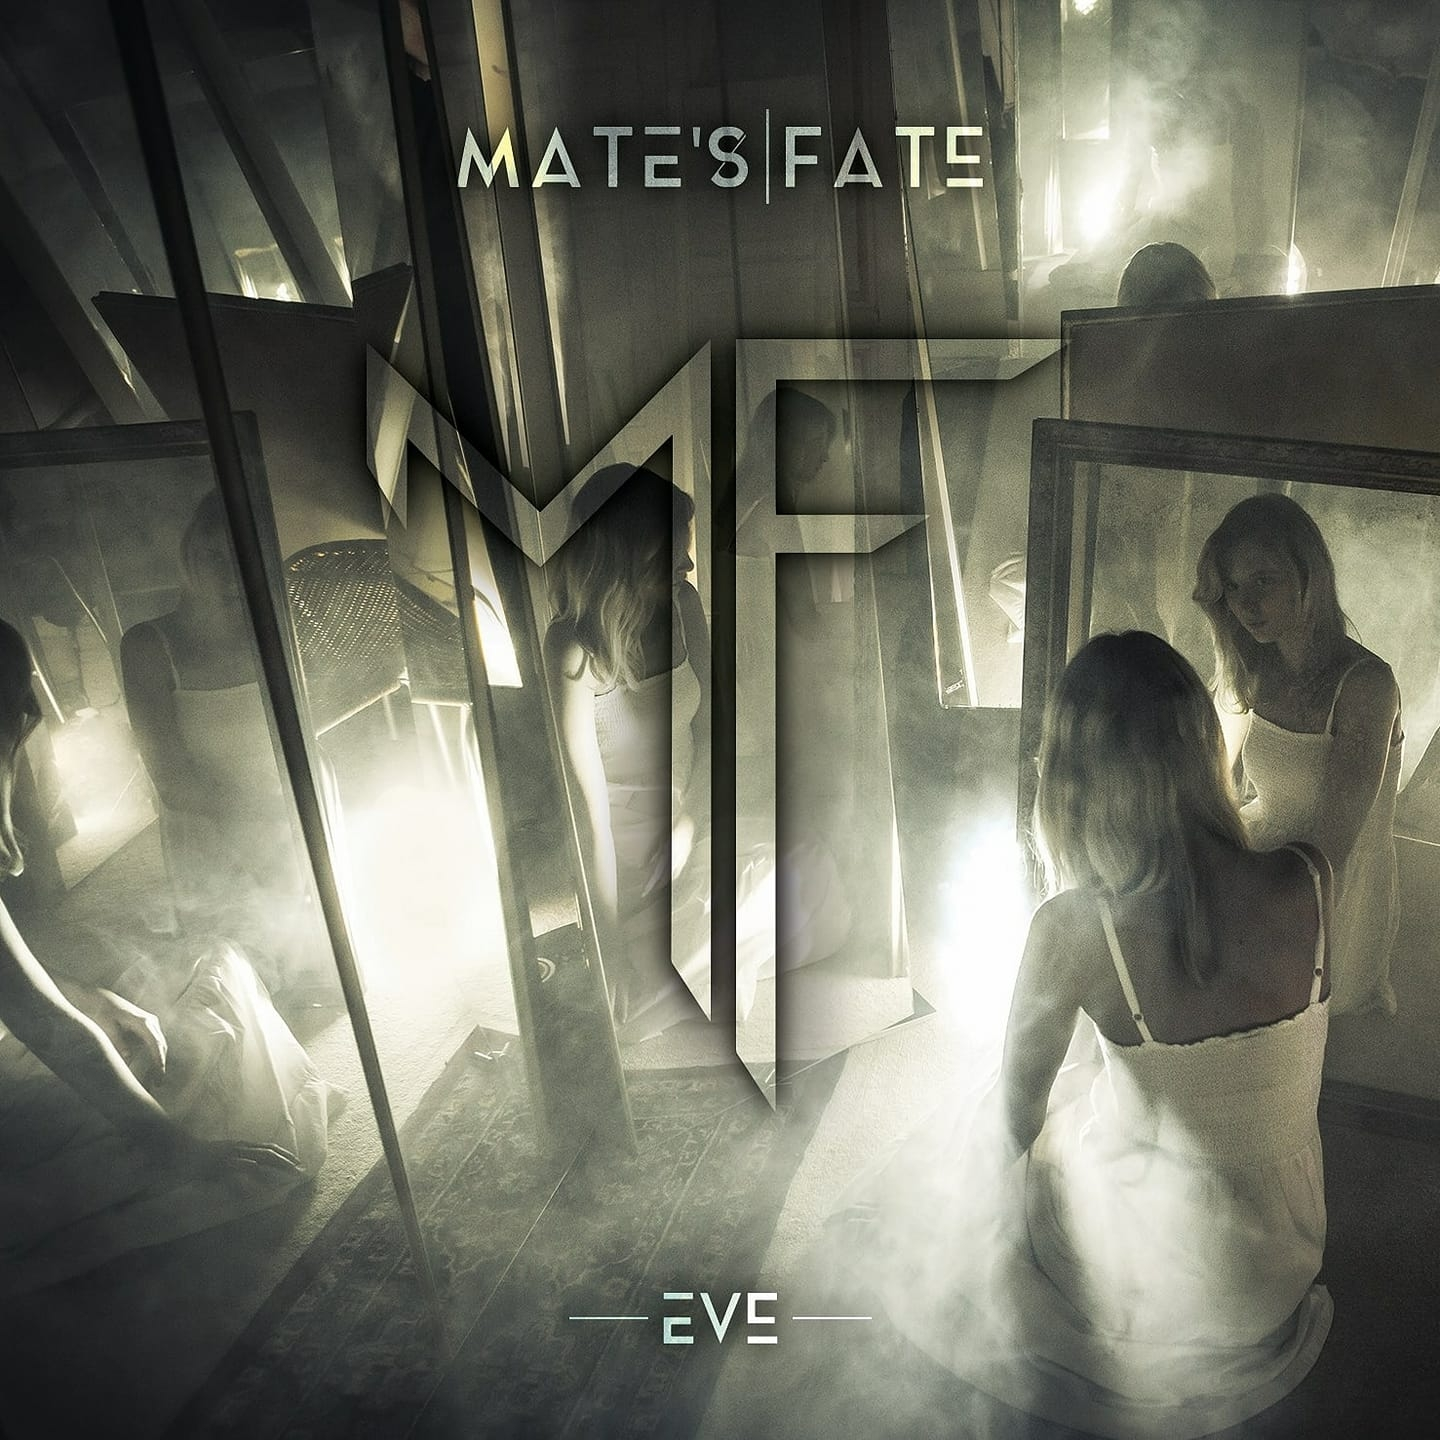 mate's fate eve one standing review